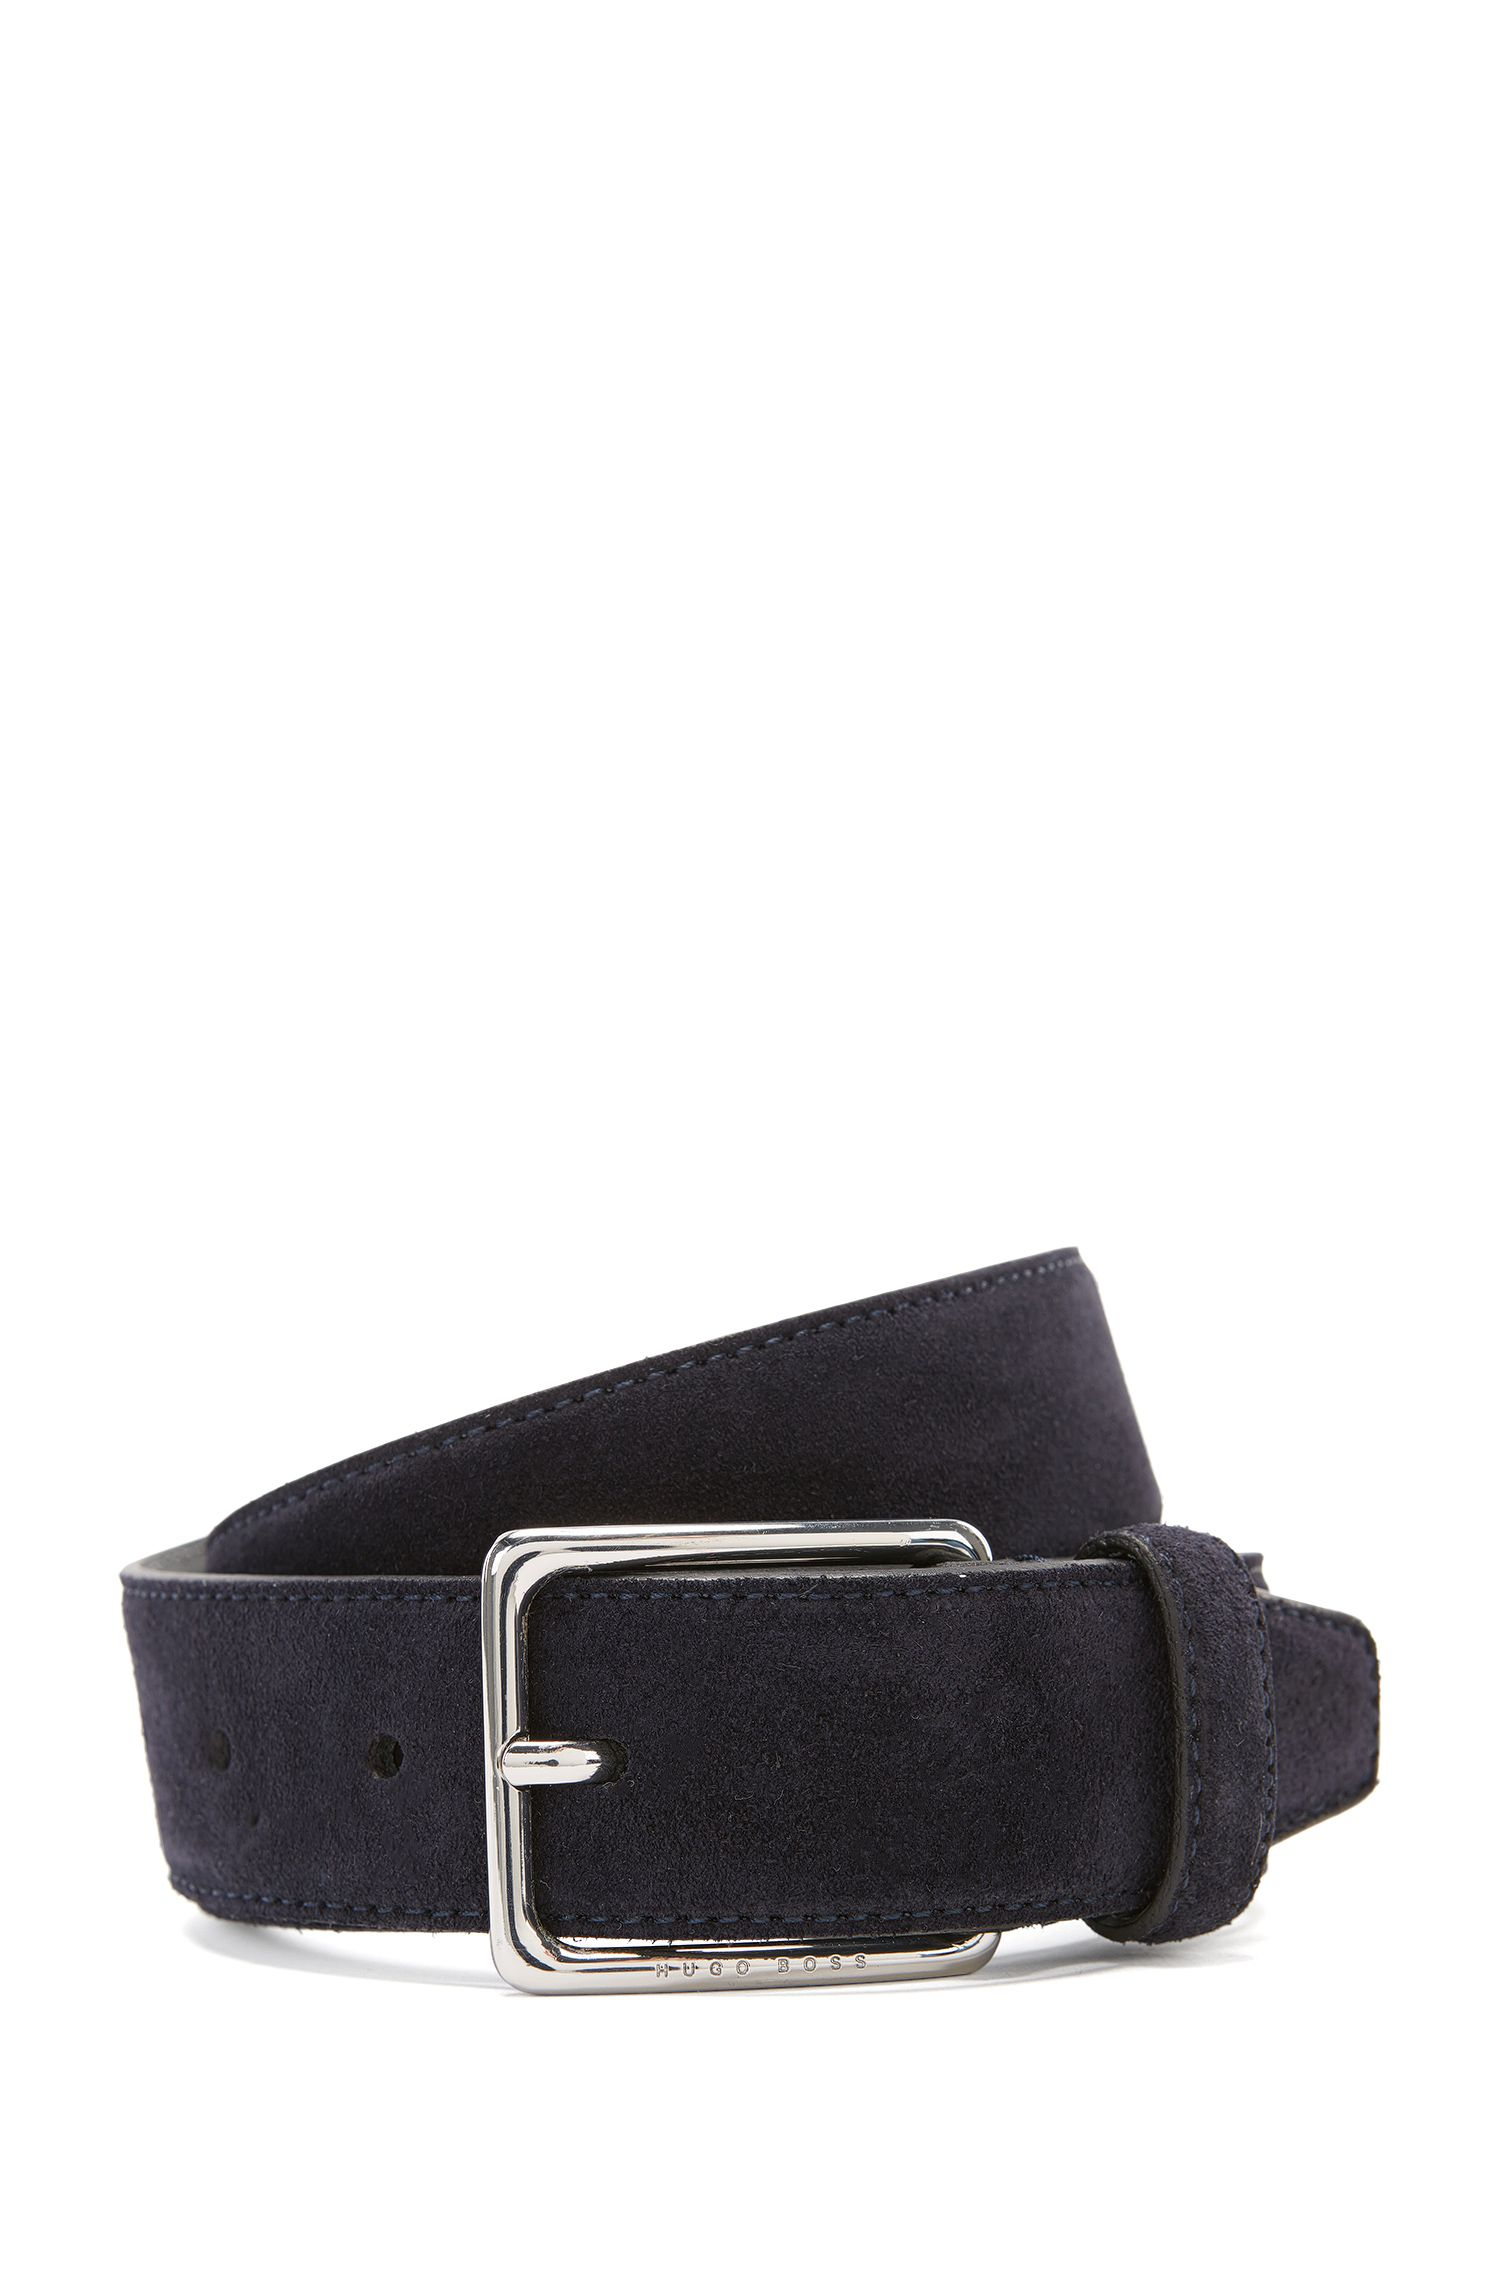 'Catioso Sz Sdpl' | Suede Leather Belt